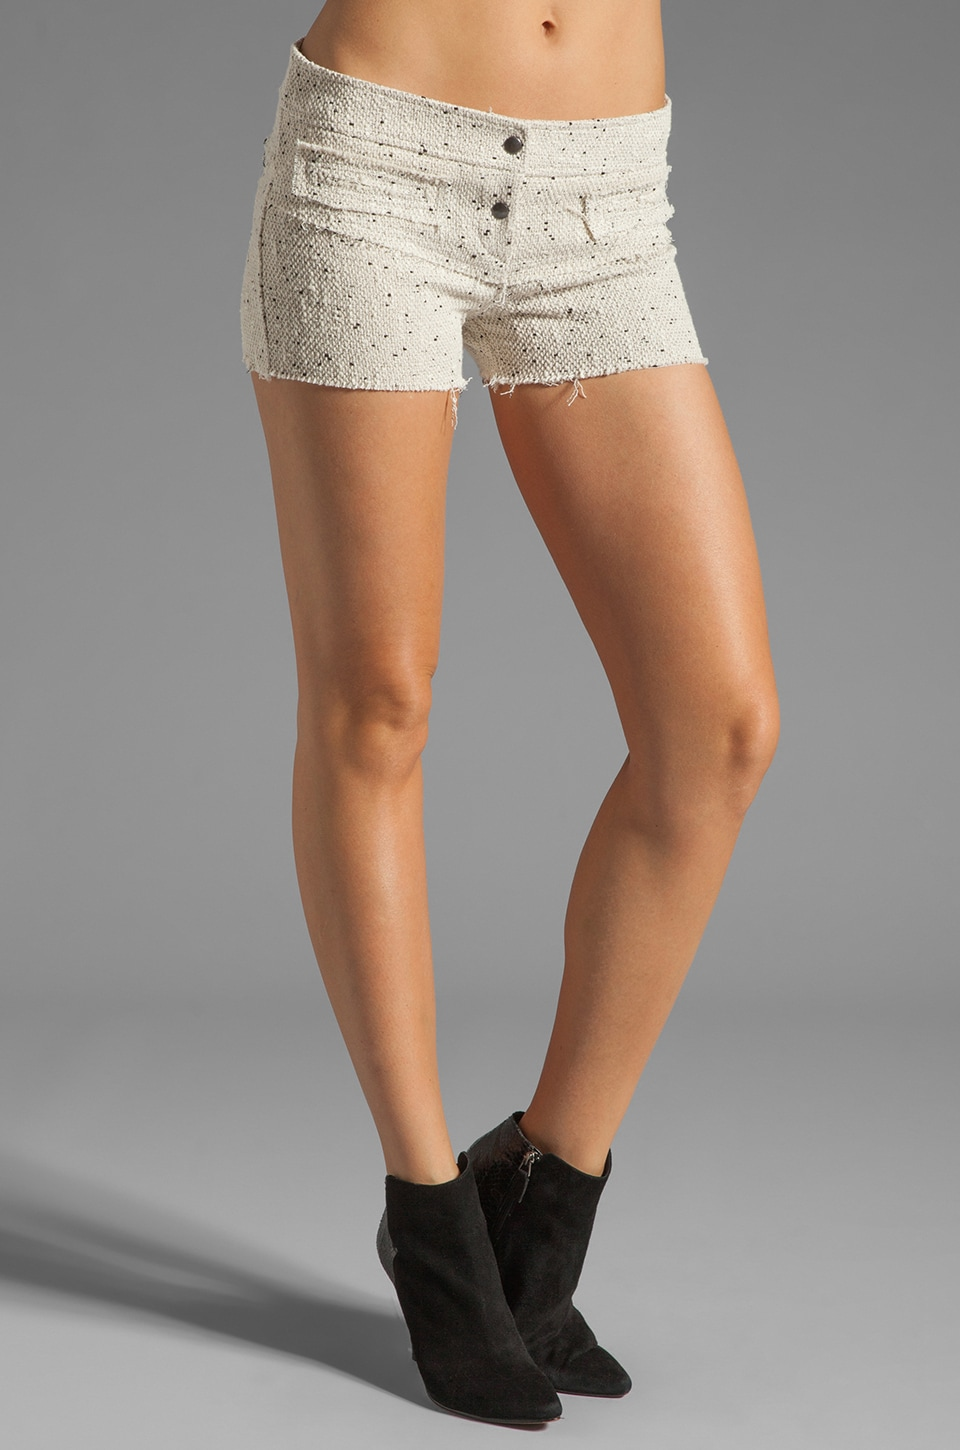 BY ZOE Joshua Shorts in Cream